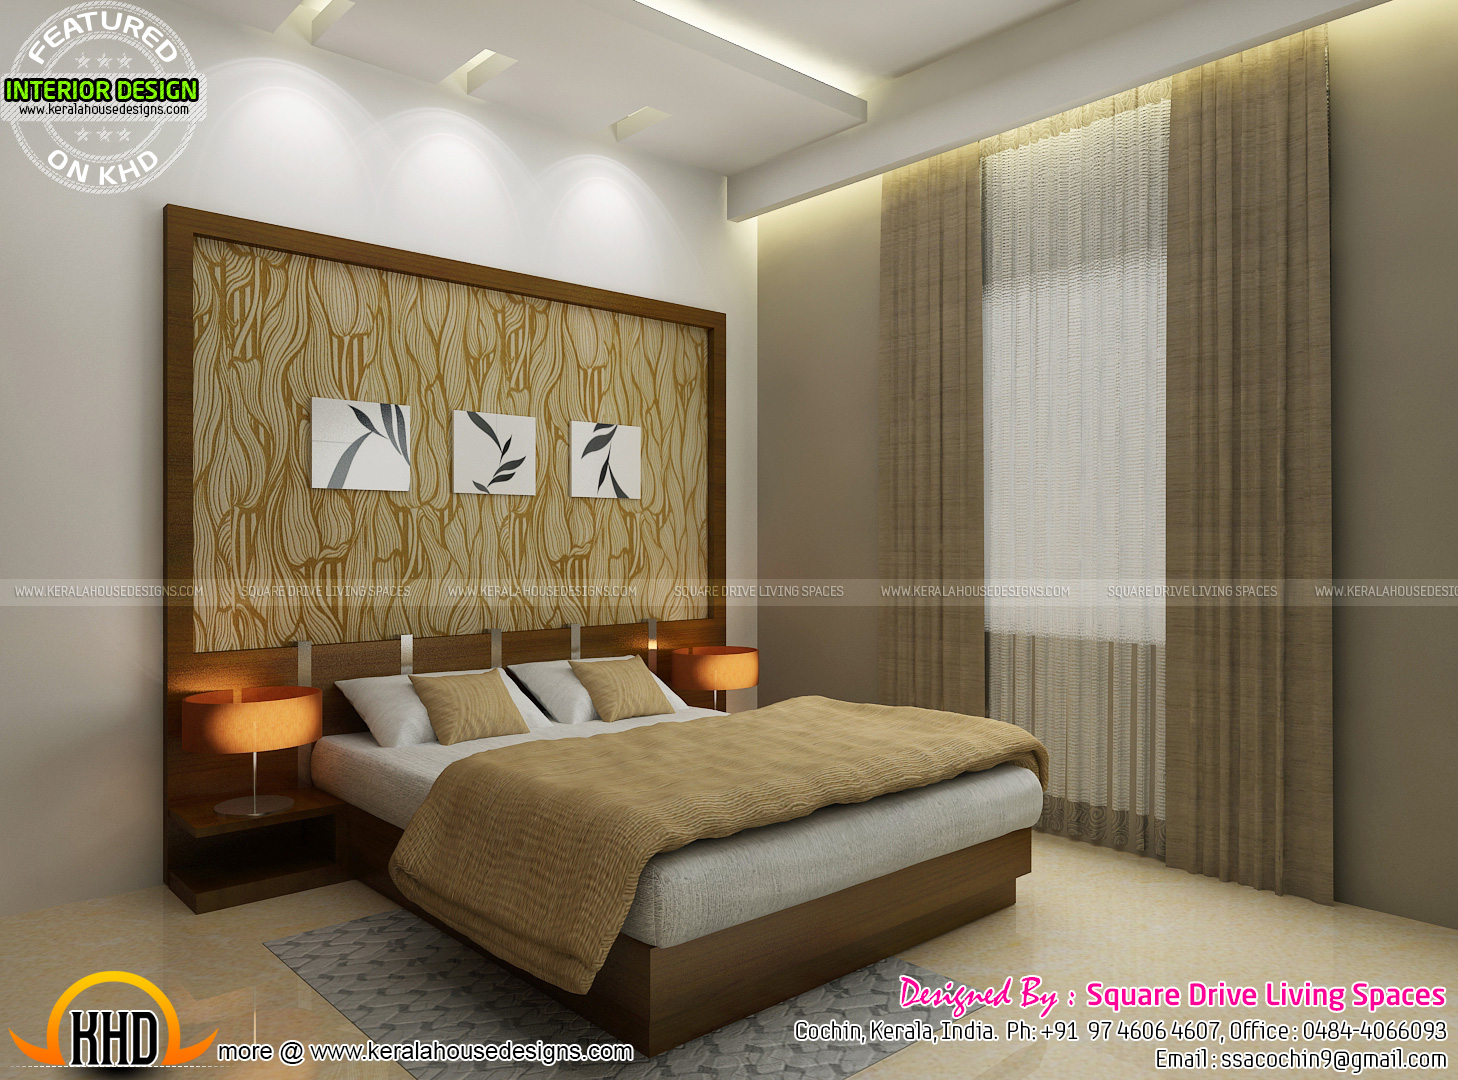 Interior designs of master bedroom living kitchen and for Master bedroom interior